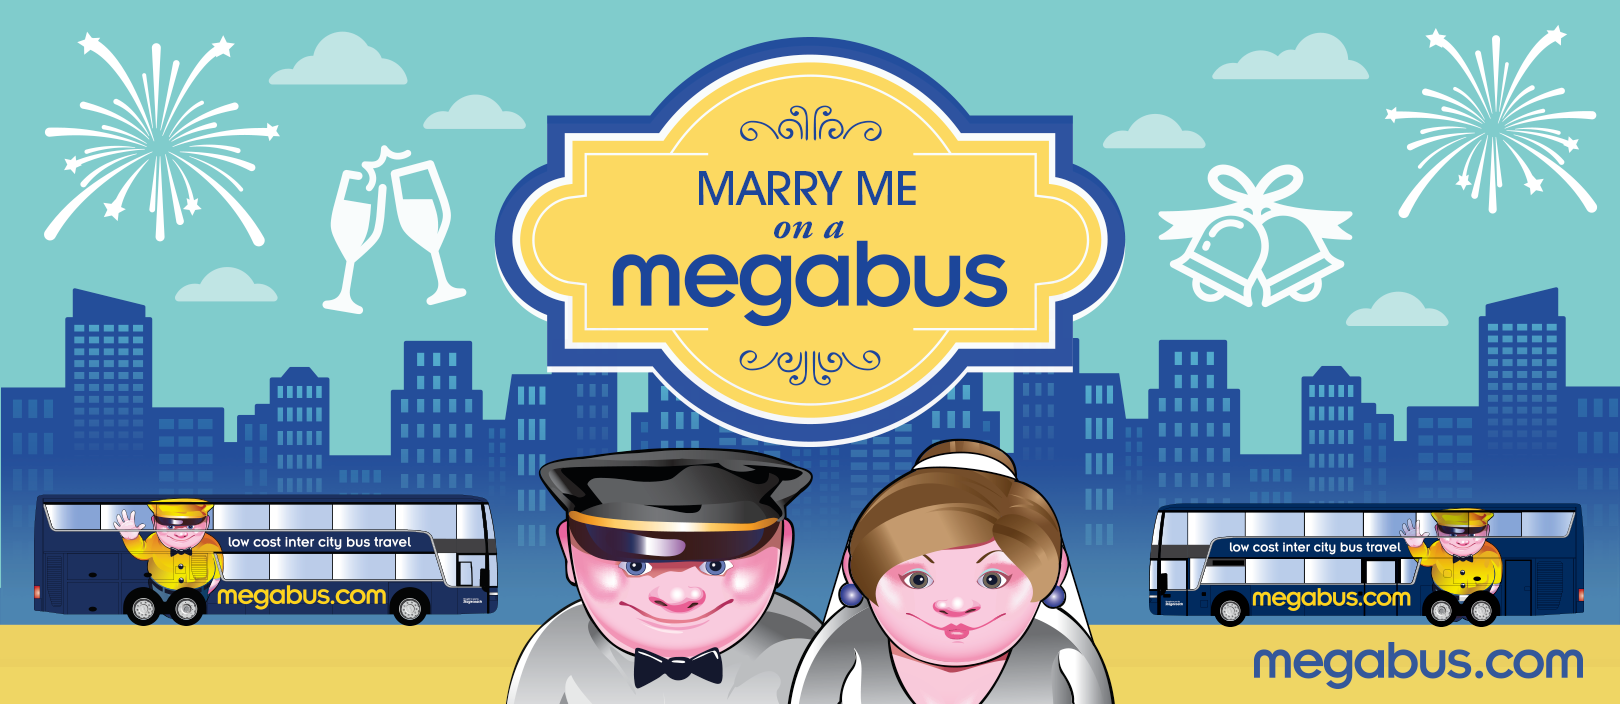 Marry me on a Megabus Contest